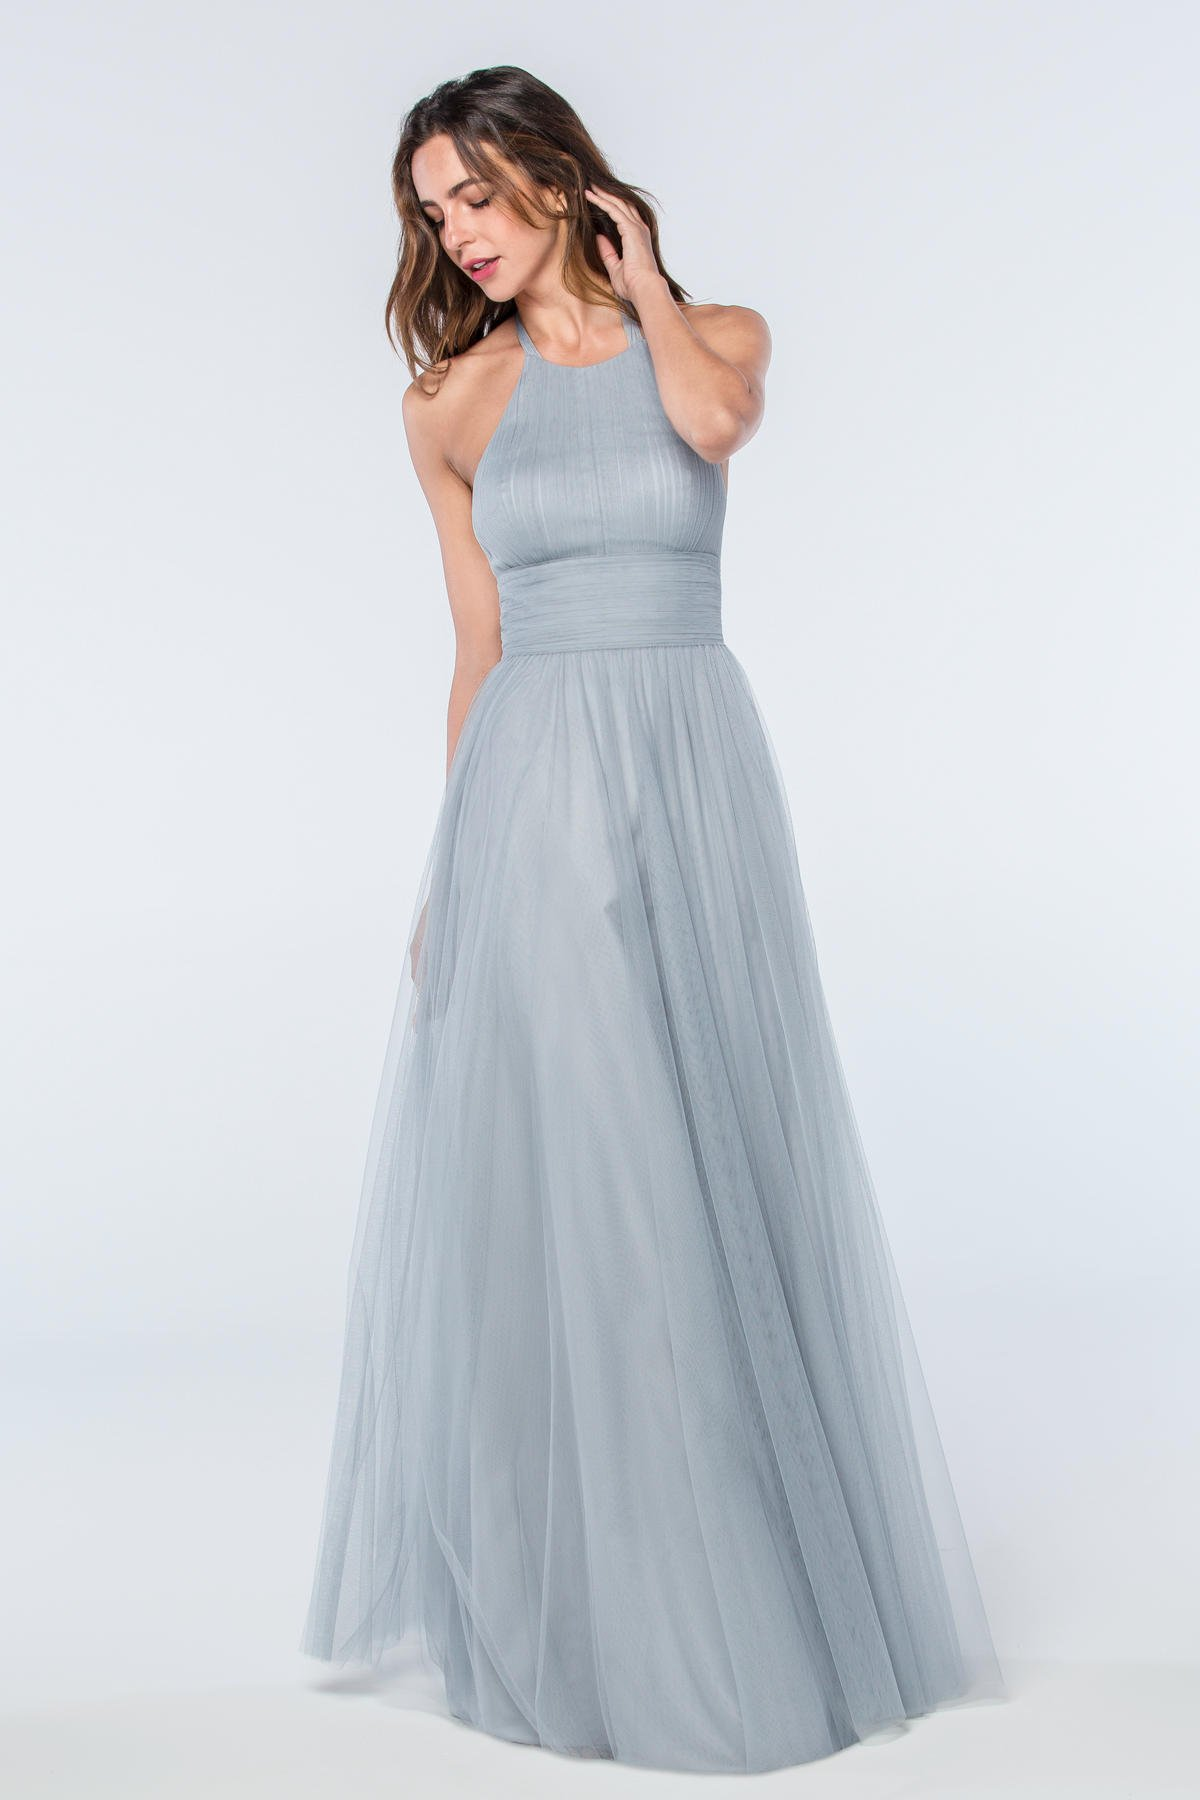 2302 Watters Bridesmaid Dress. Watters Maids at Bridals by Lori Atlanta. Watters bridesmaids gowns